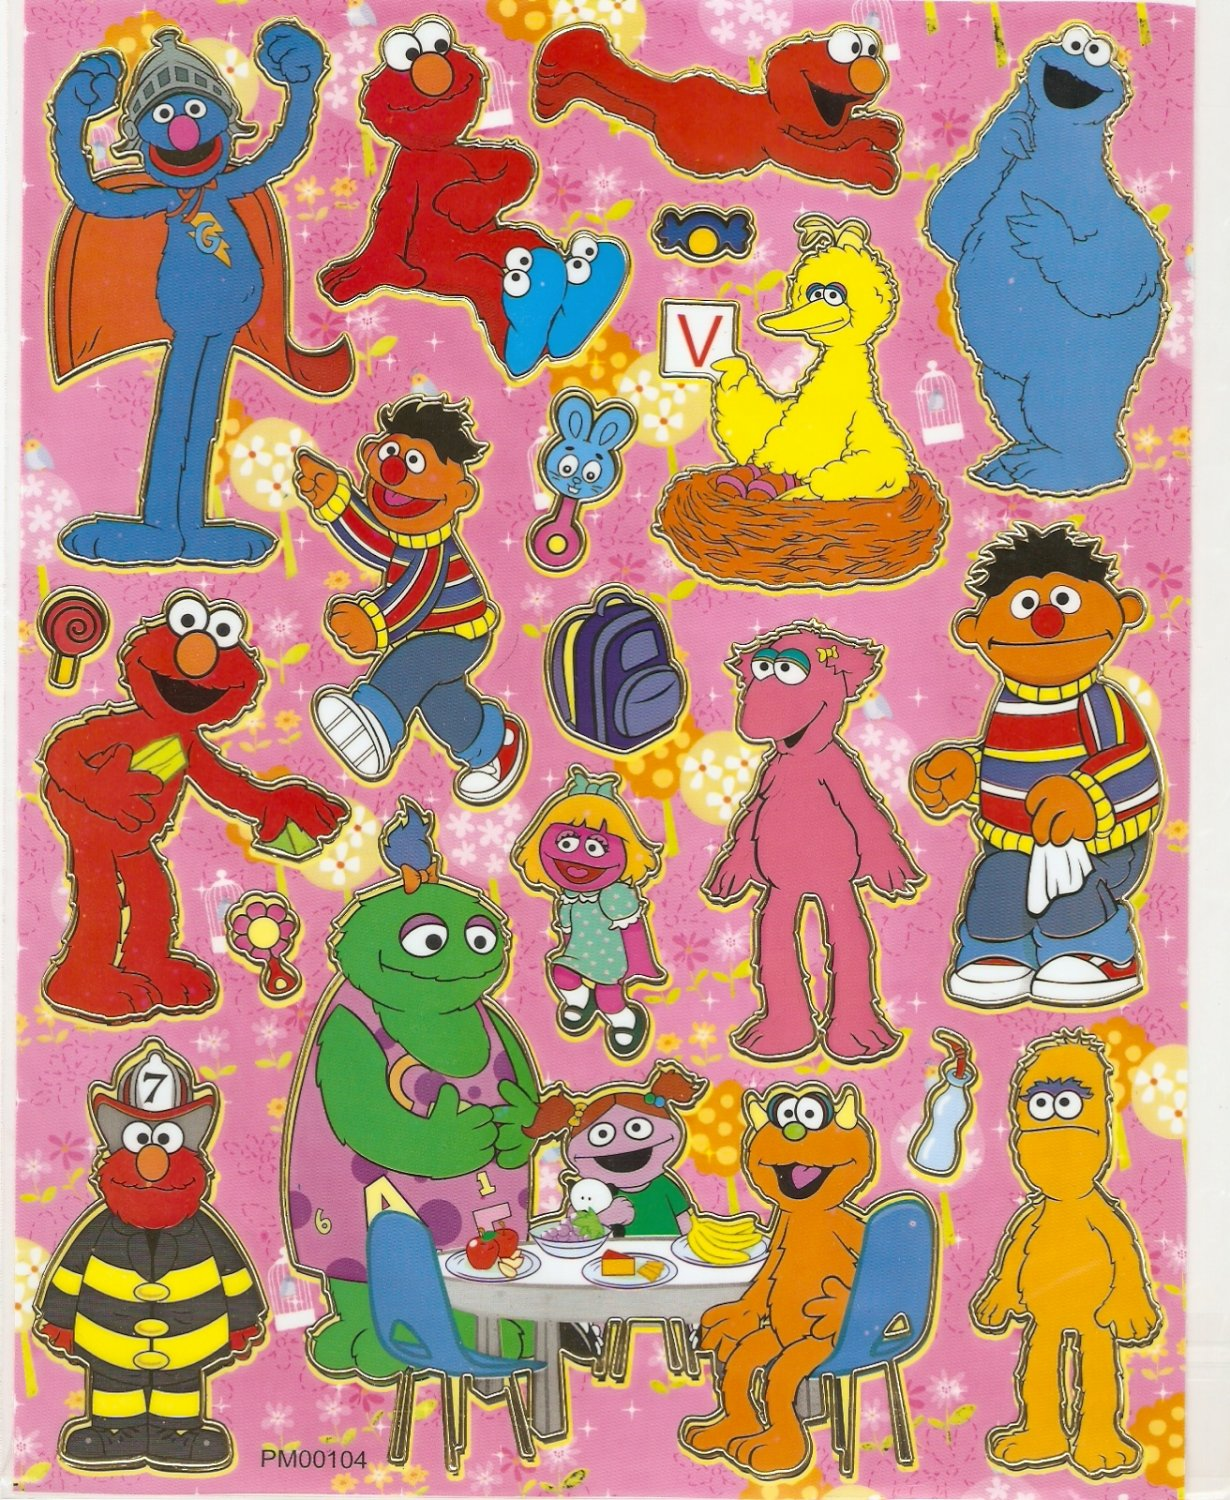 10 Big sheets Elmo Sticker Buy 2 lots Bonus 1 #ELM PM00104